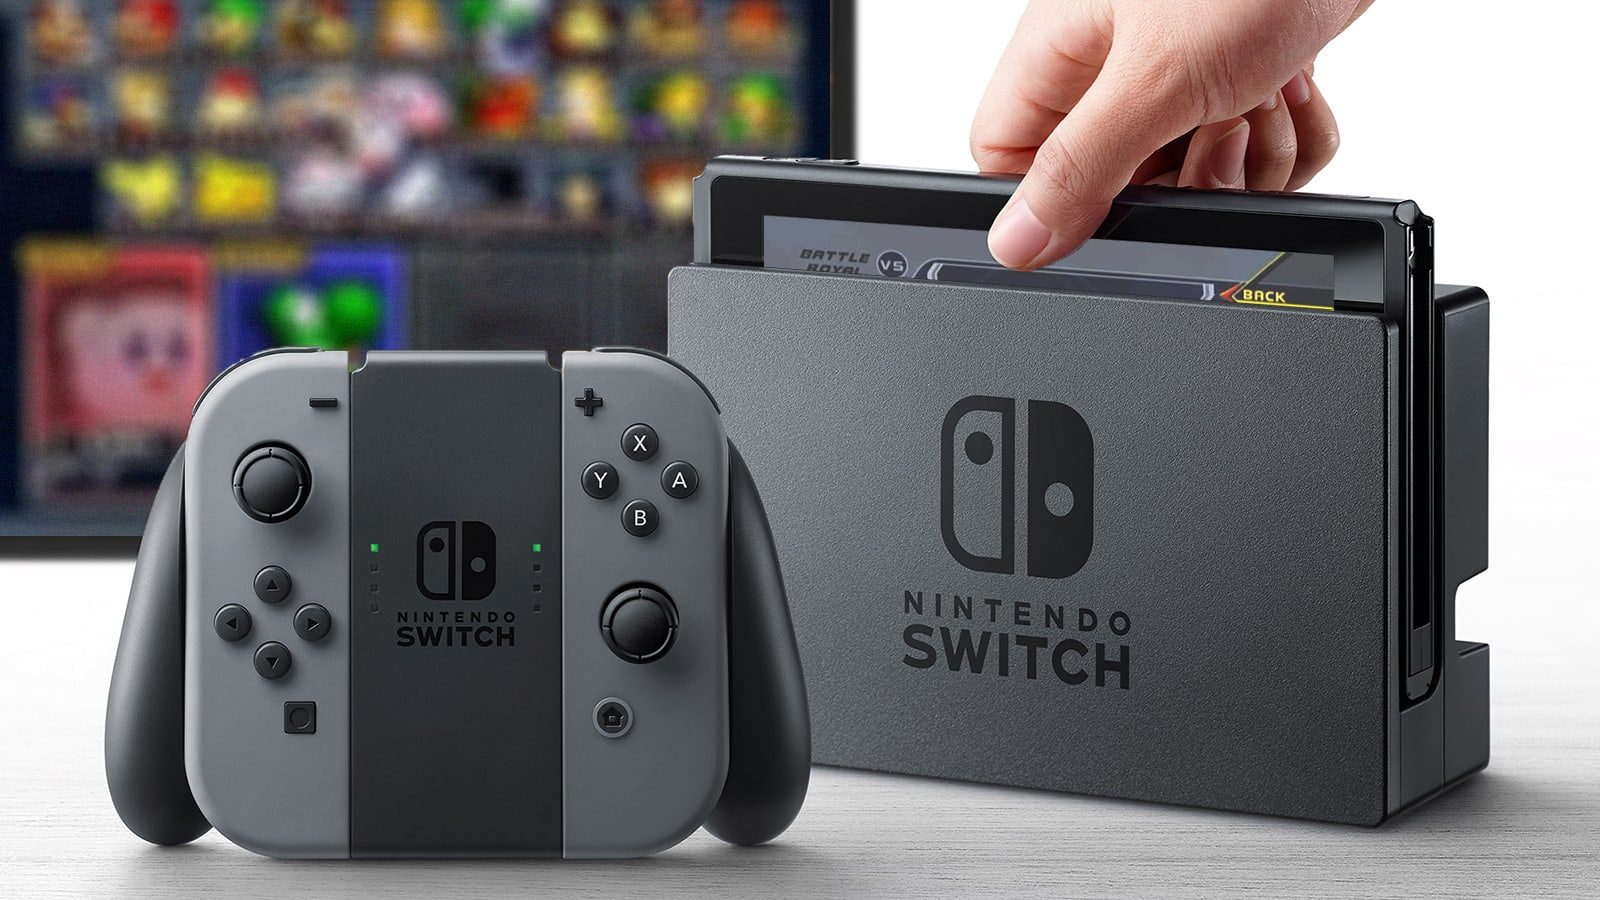 Nintendo's Switch might play GameCube games